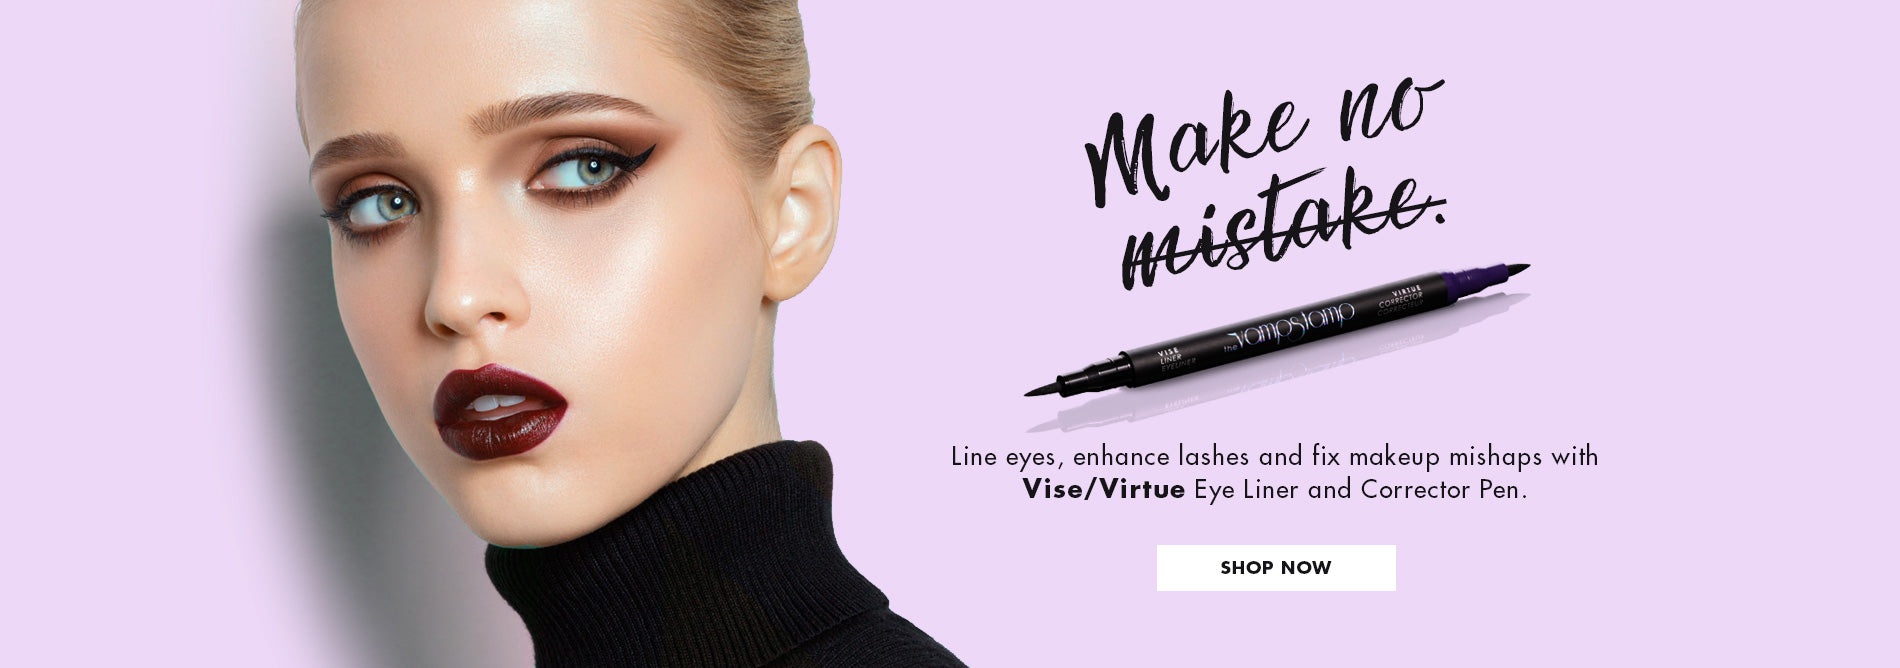 SHOP THE COLLECTION VAVAVOOM Stamp With VINKR Eyeliner Ink